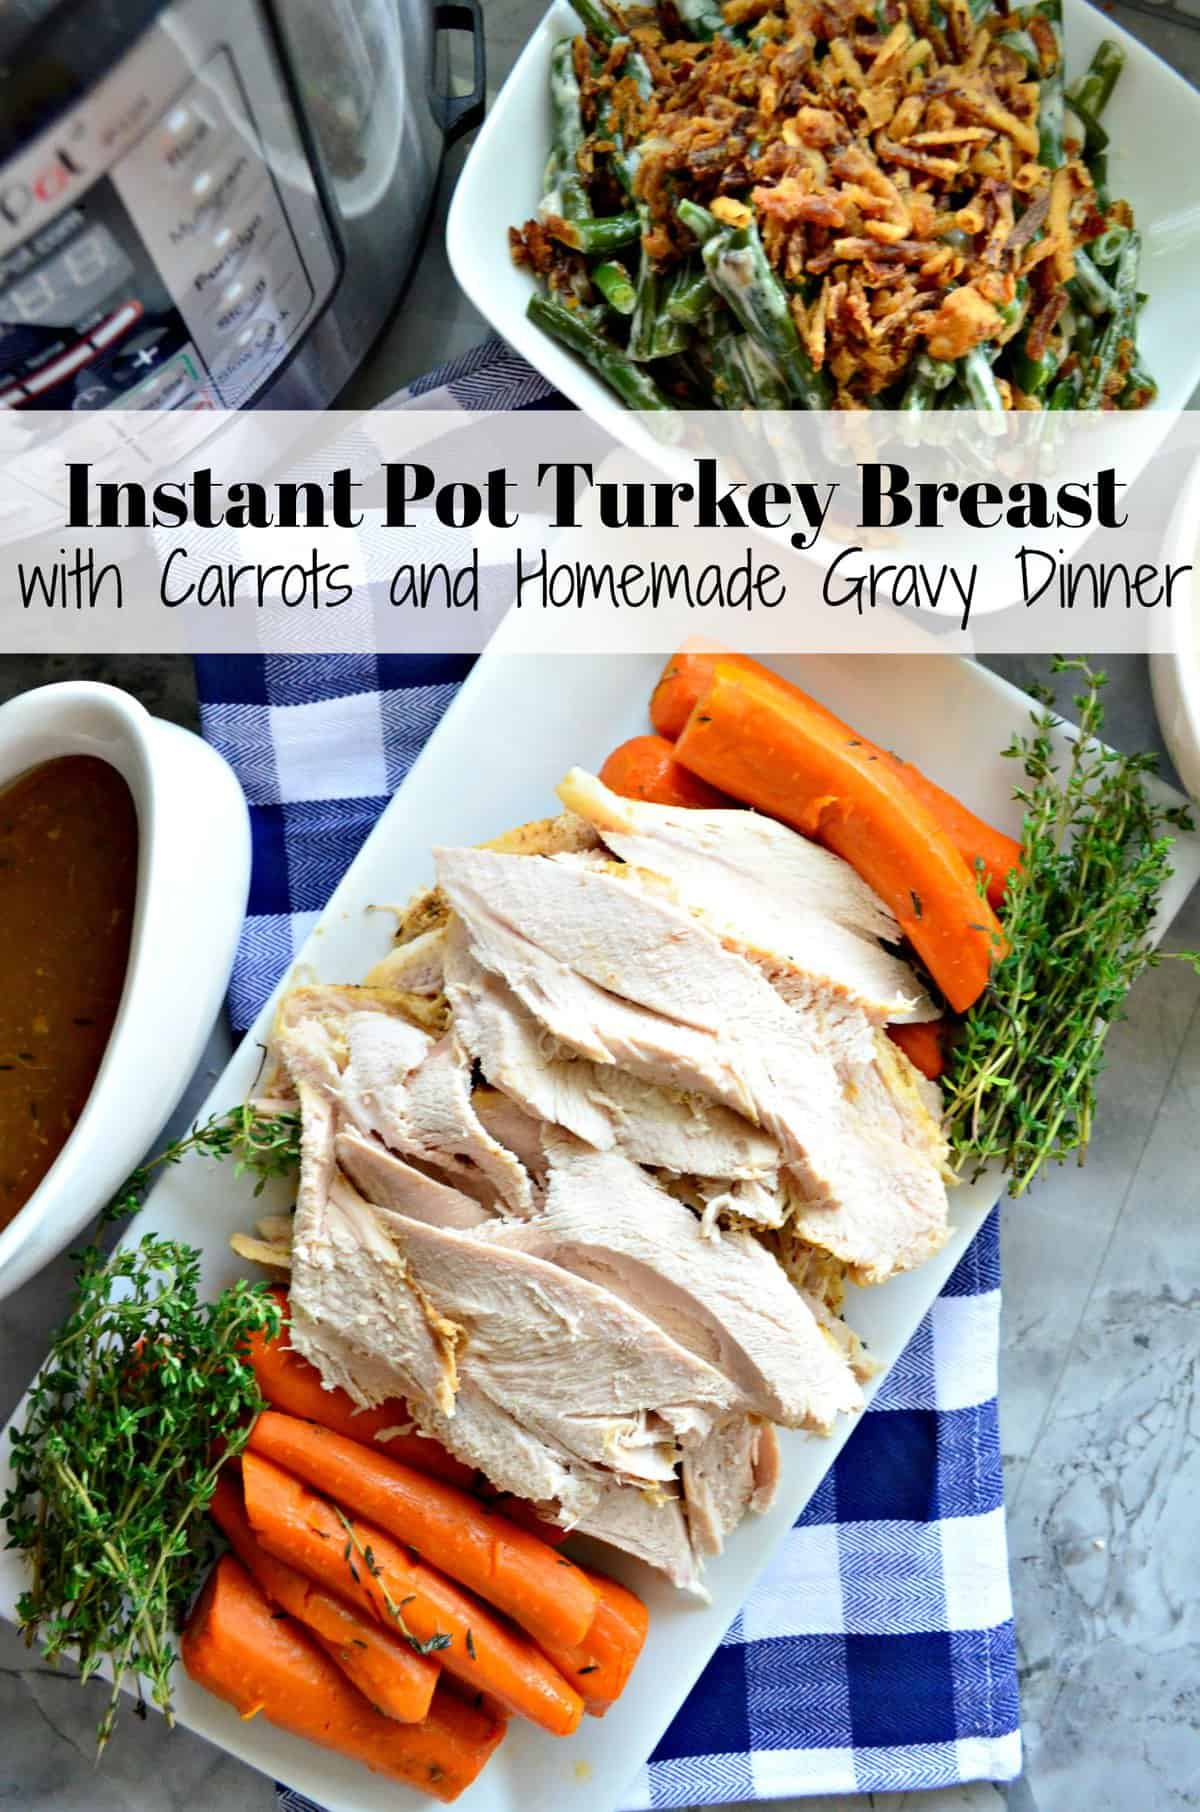 Instant Pot Turkey Breast with Carrots and Homemade Gravy Dinner